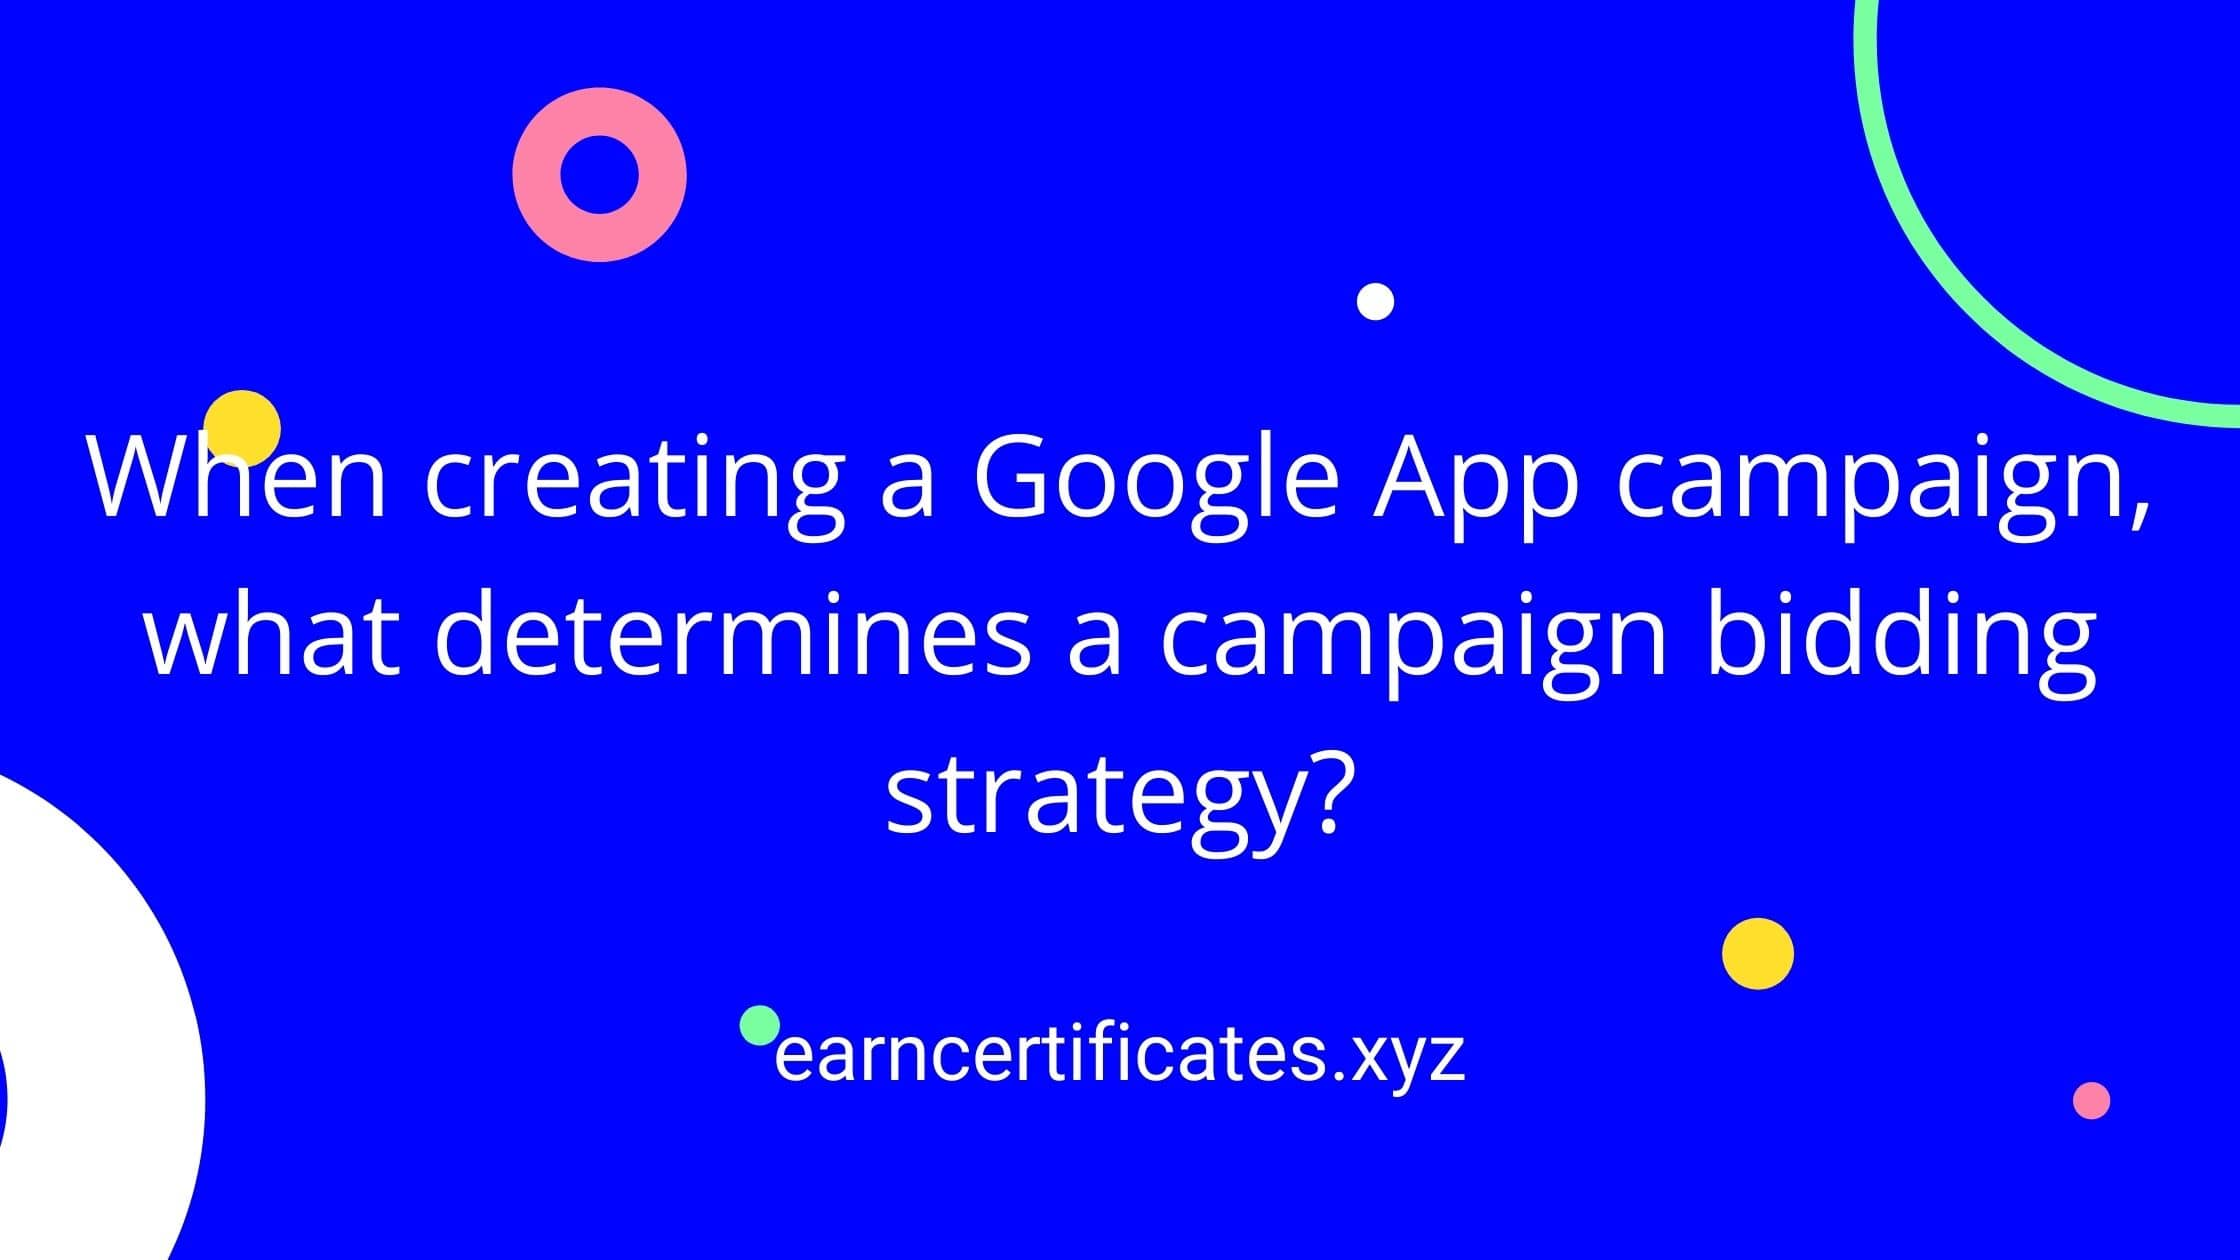 When creating a Google App campaign, what determines a campaign bidding strategy?